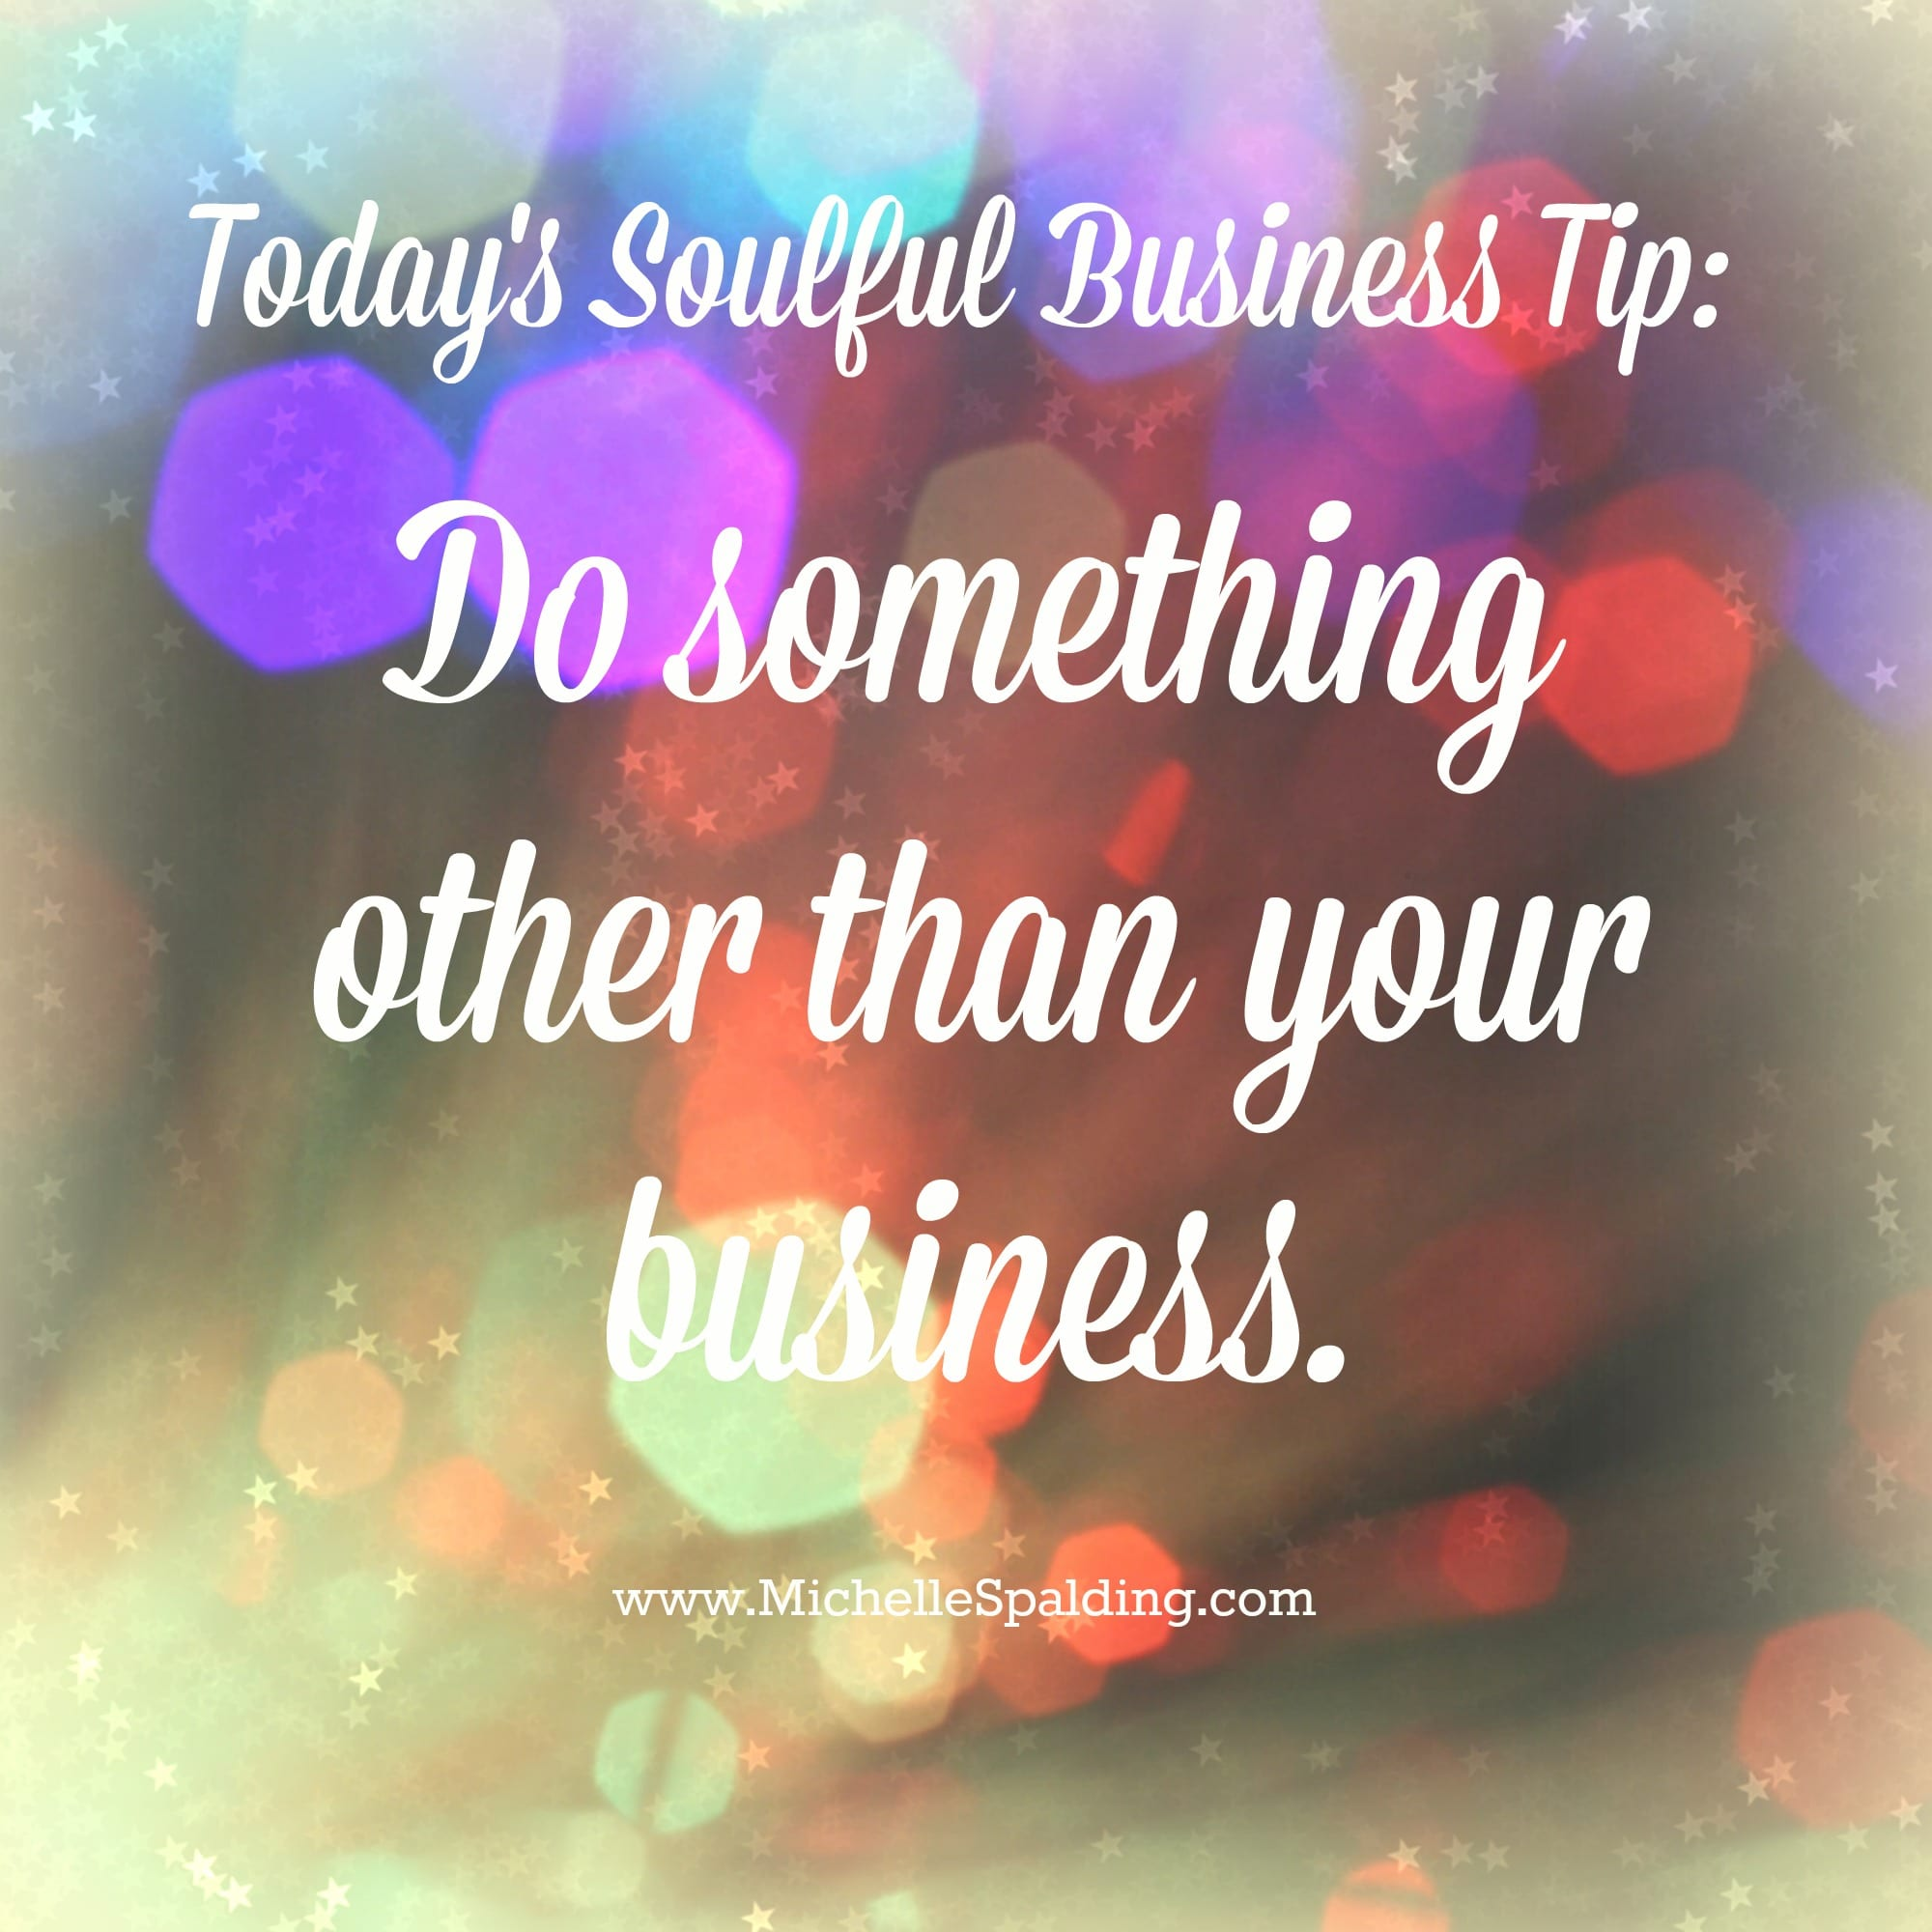 Do something other than your business